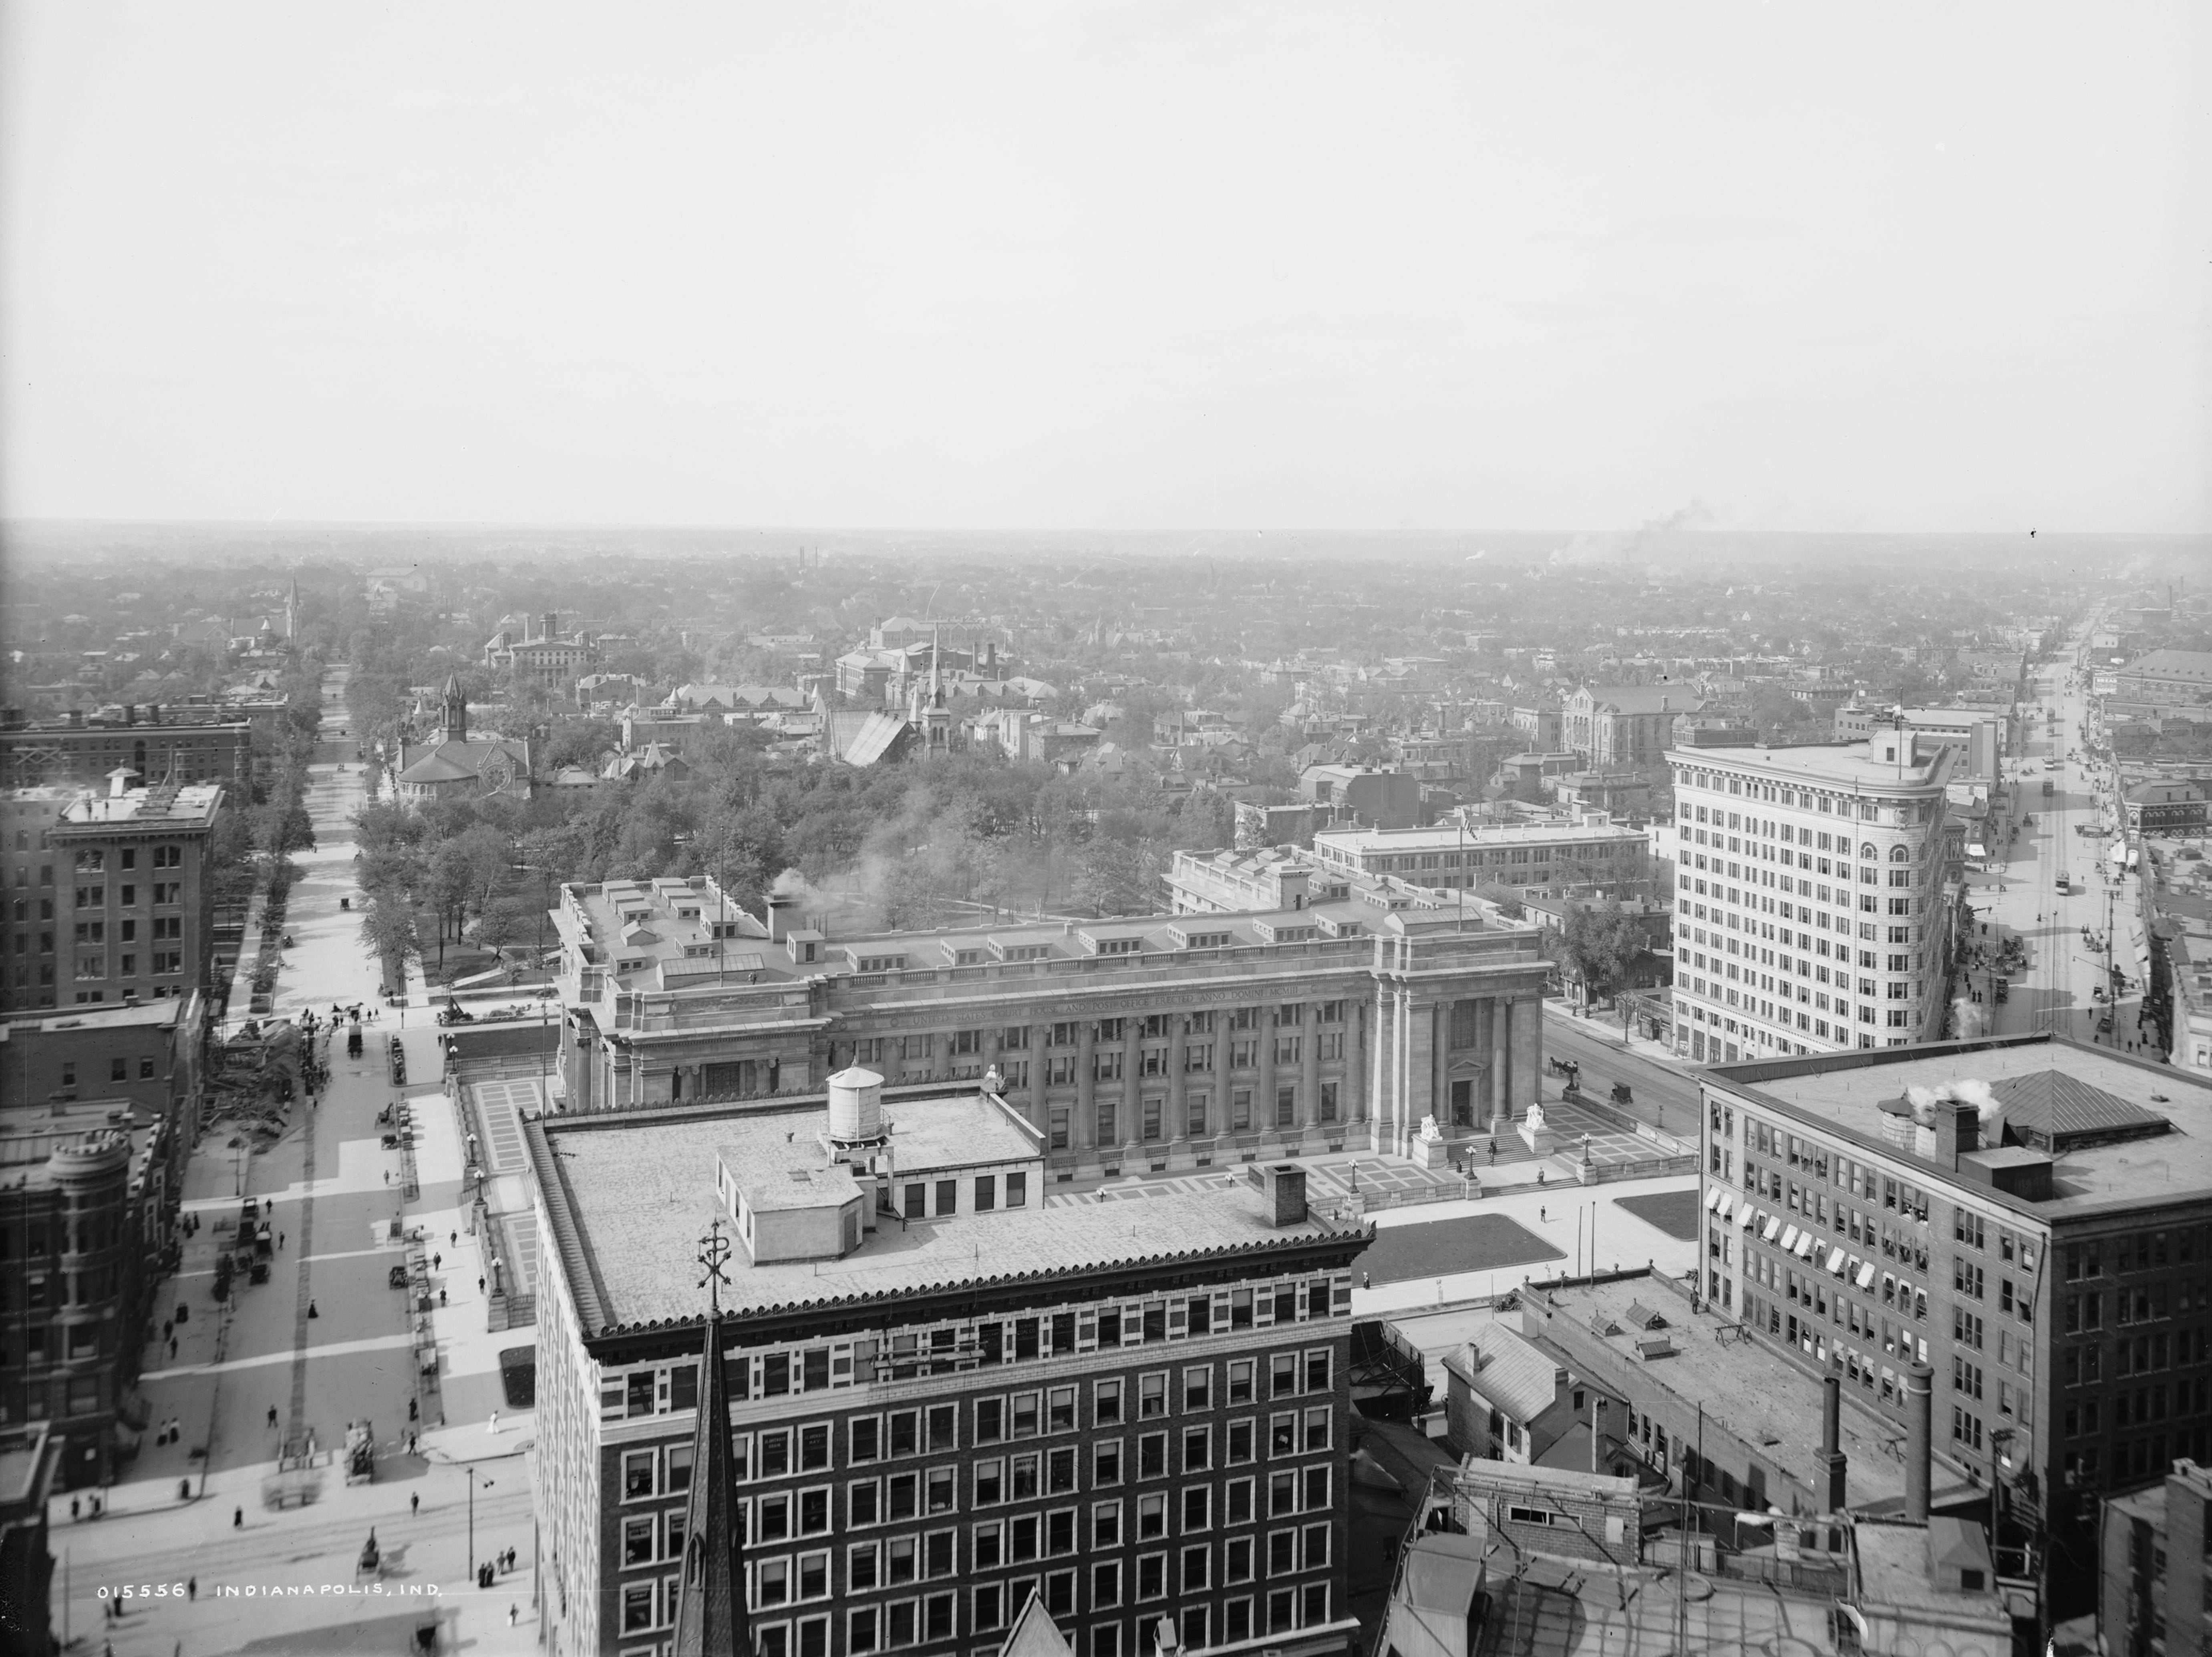 The newly constructed U.S. Post Office and Court House building on E. Ohio Street in the middle of this photo taken circa 1905.